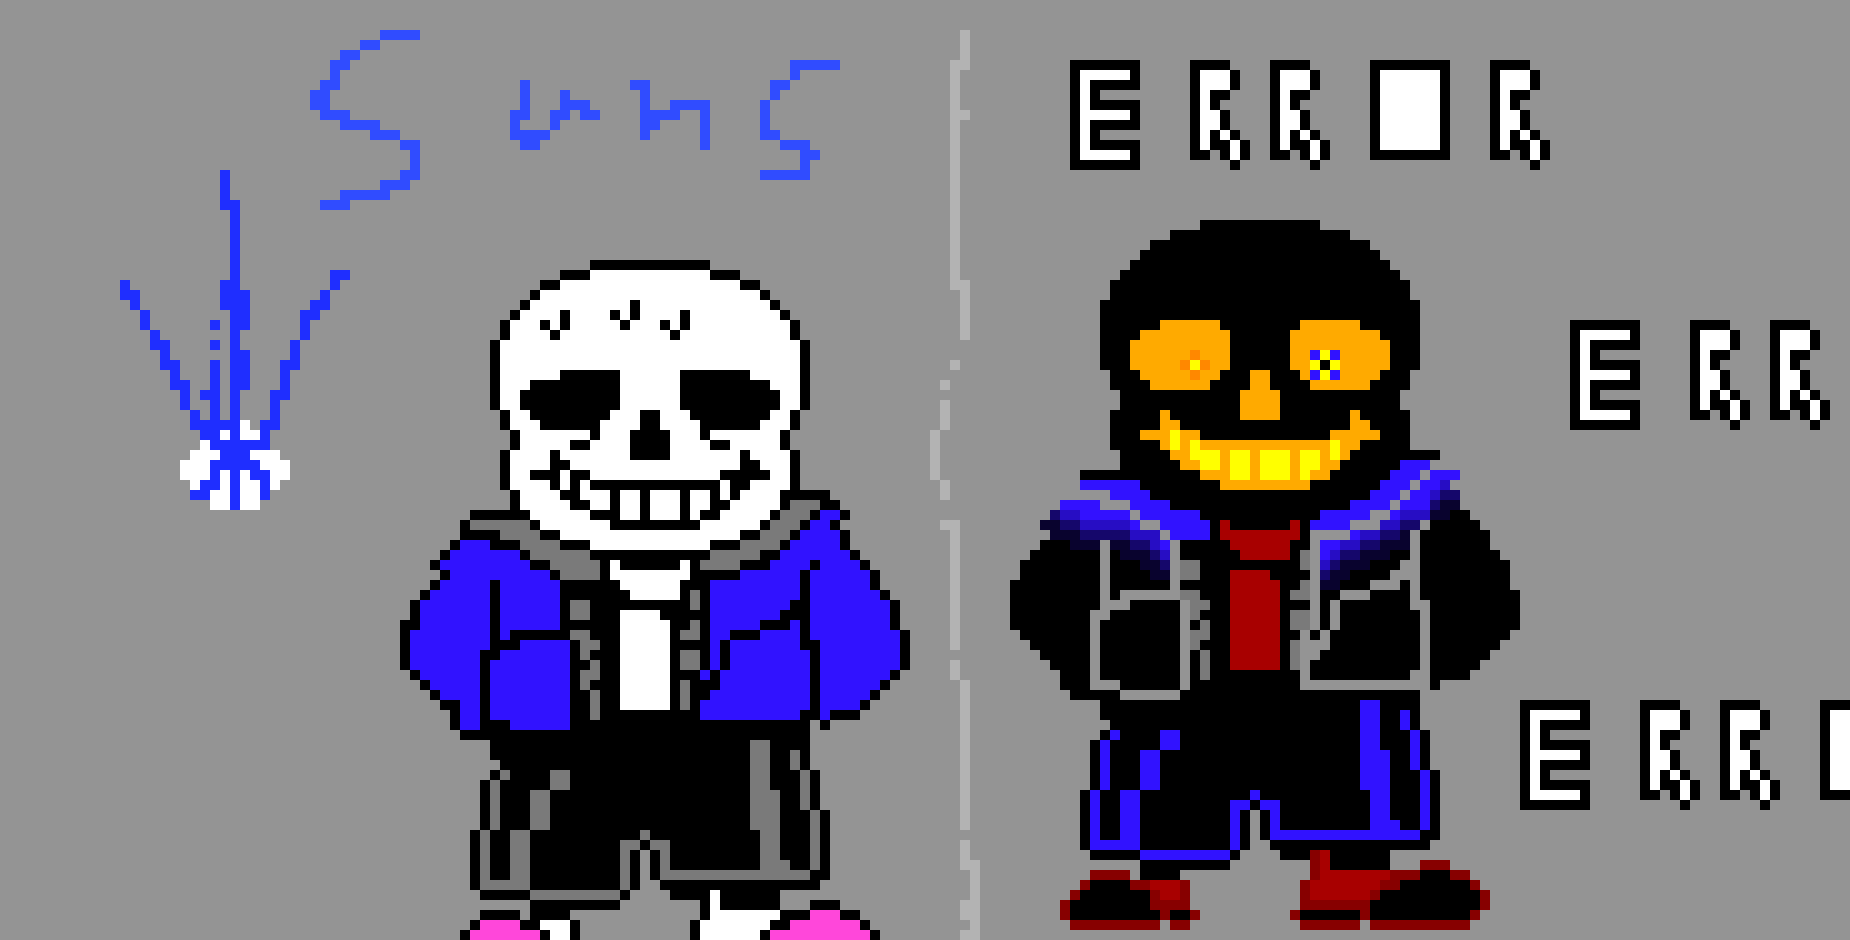 errorsans.zip was not found